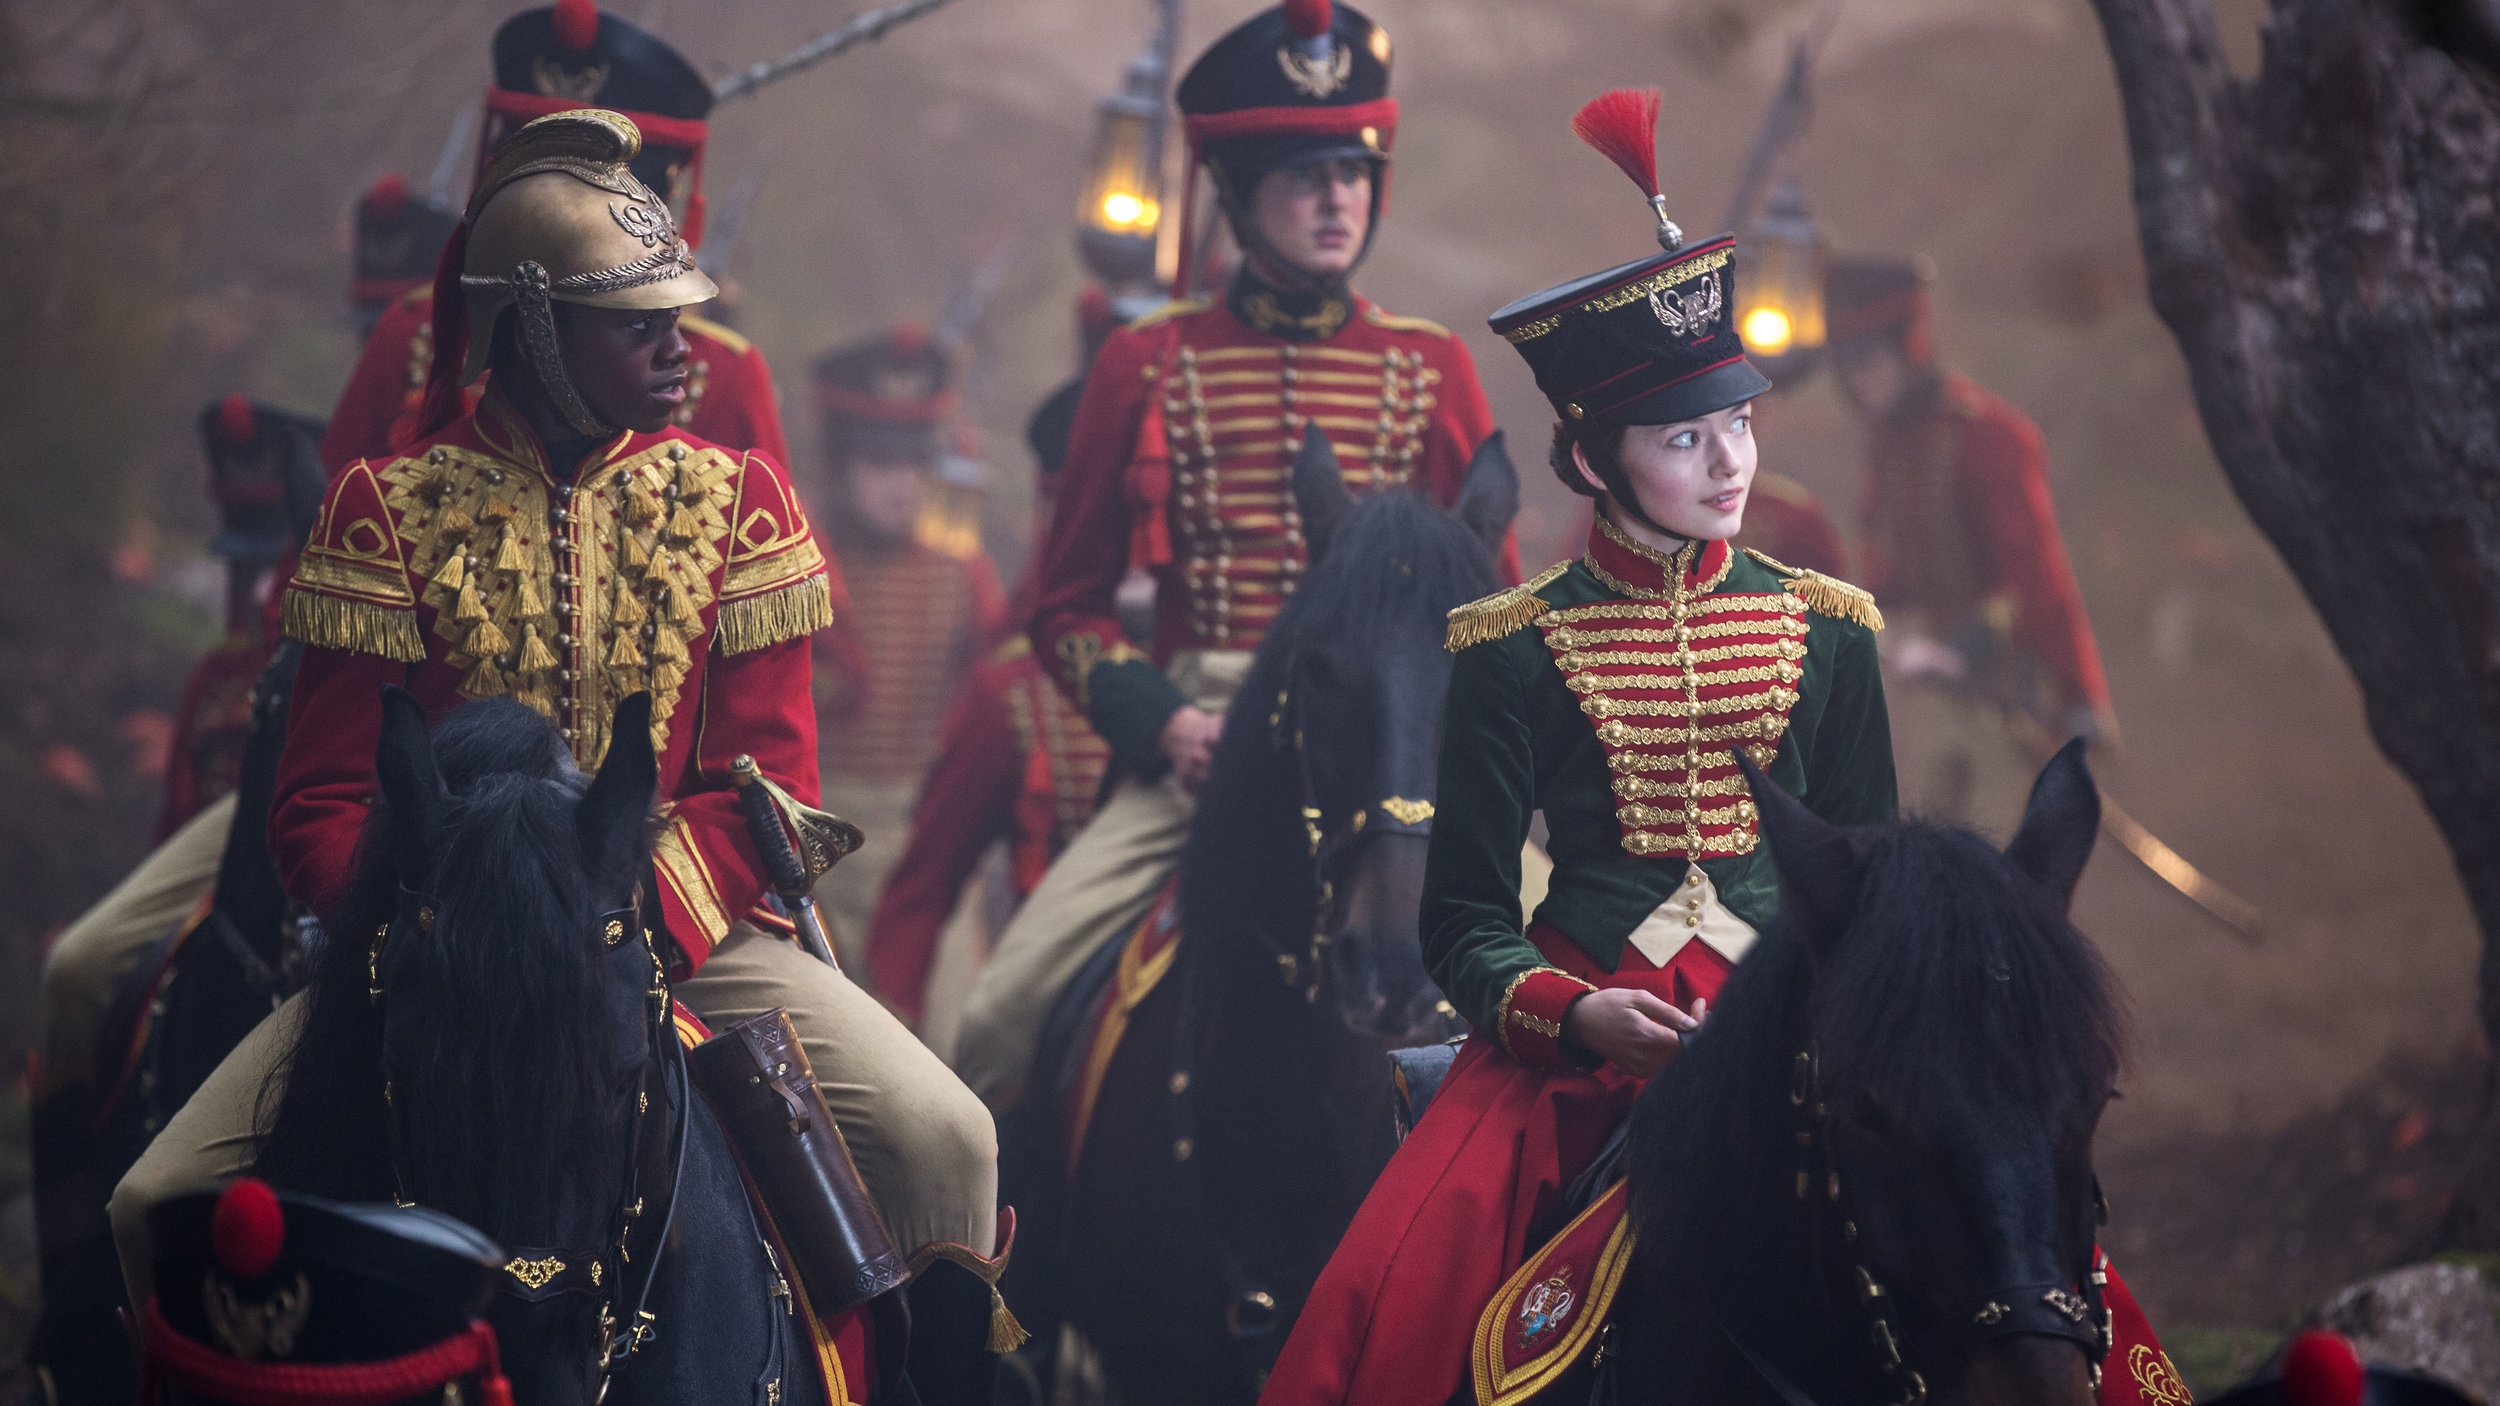 Clara and Phillip leading the other soldiers on a mission.